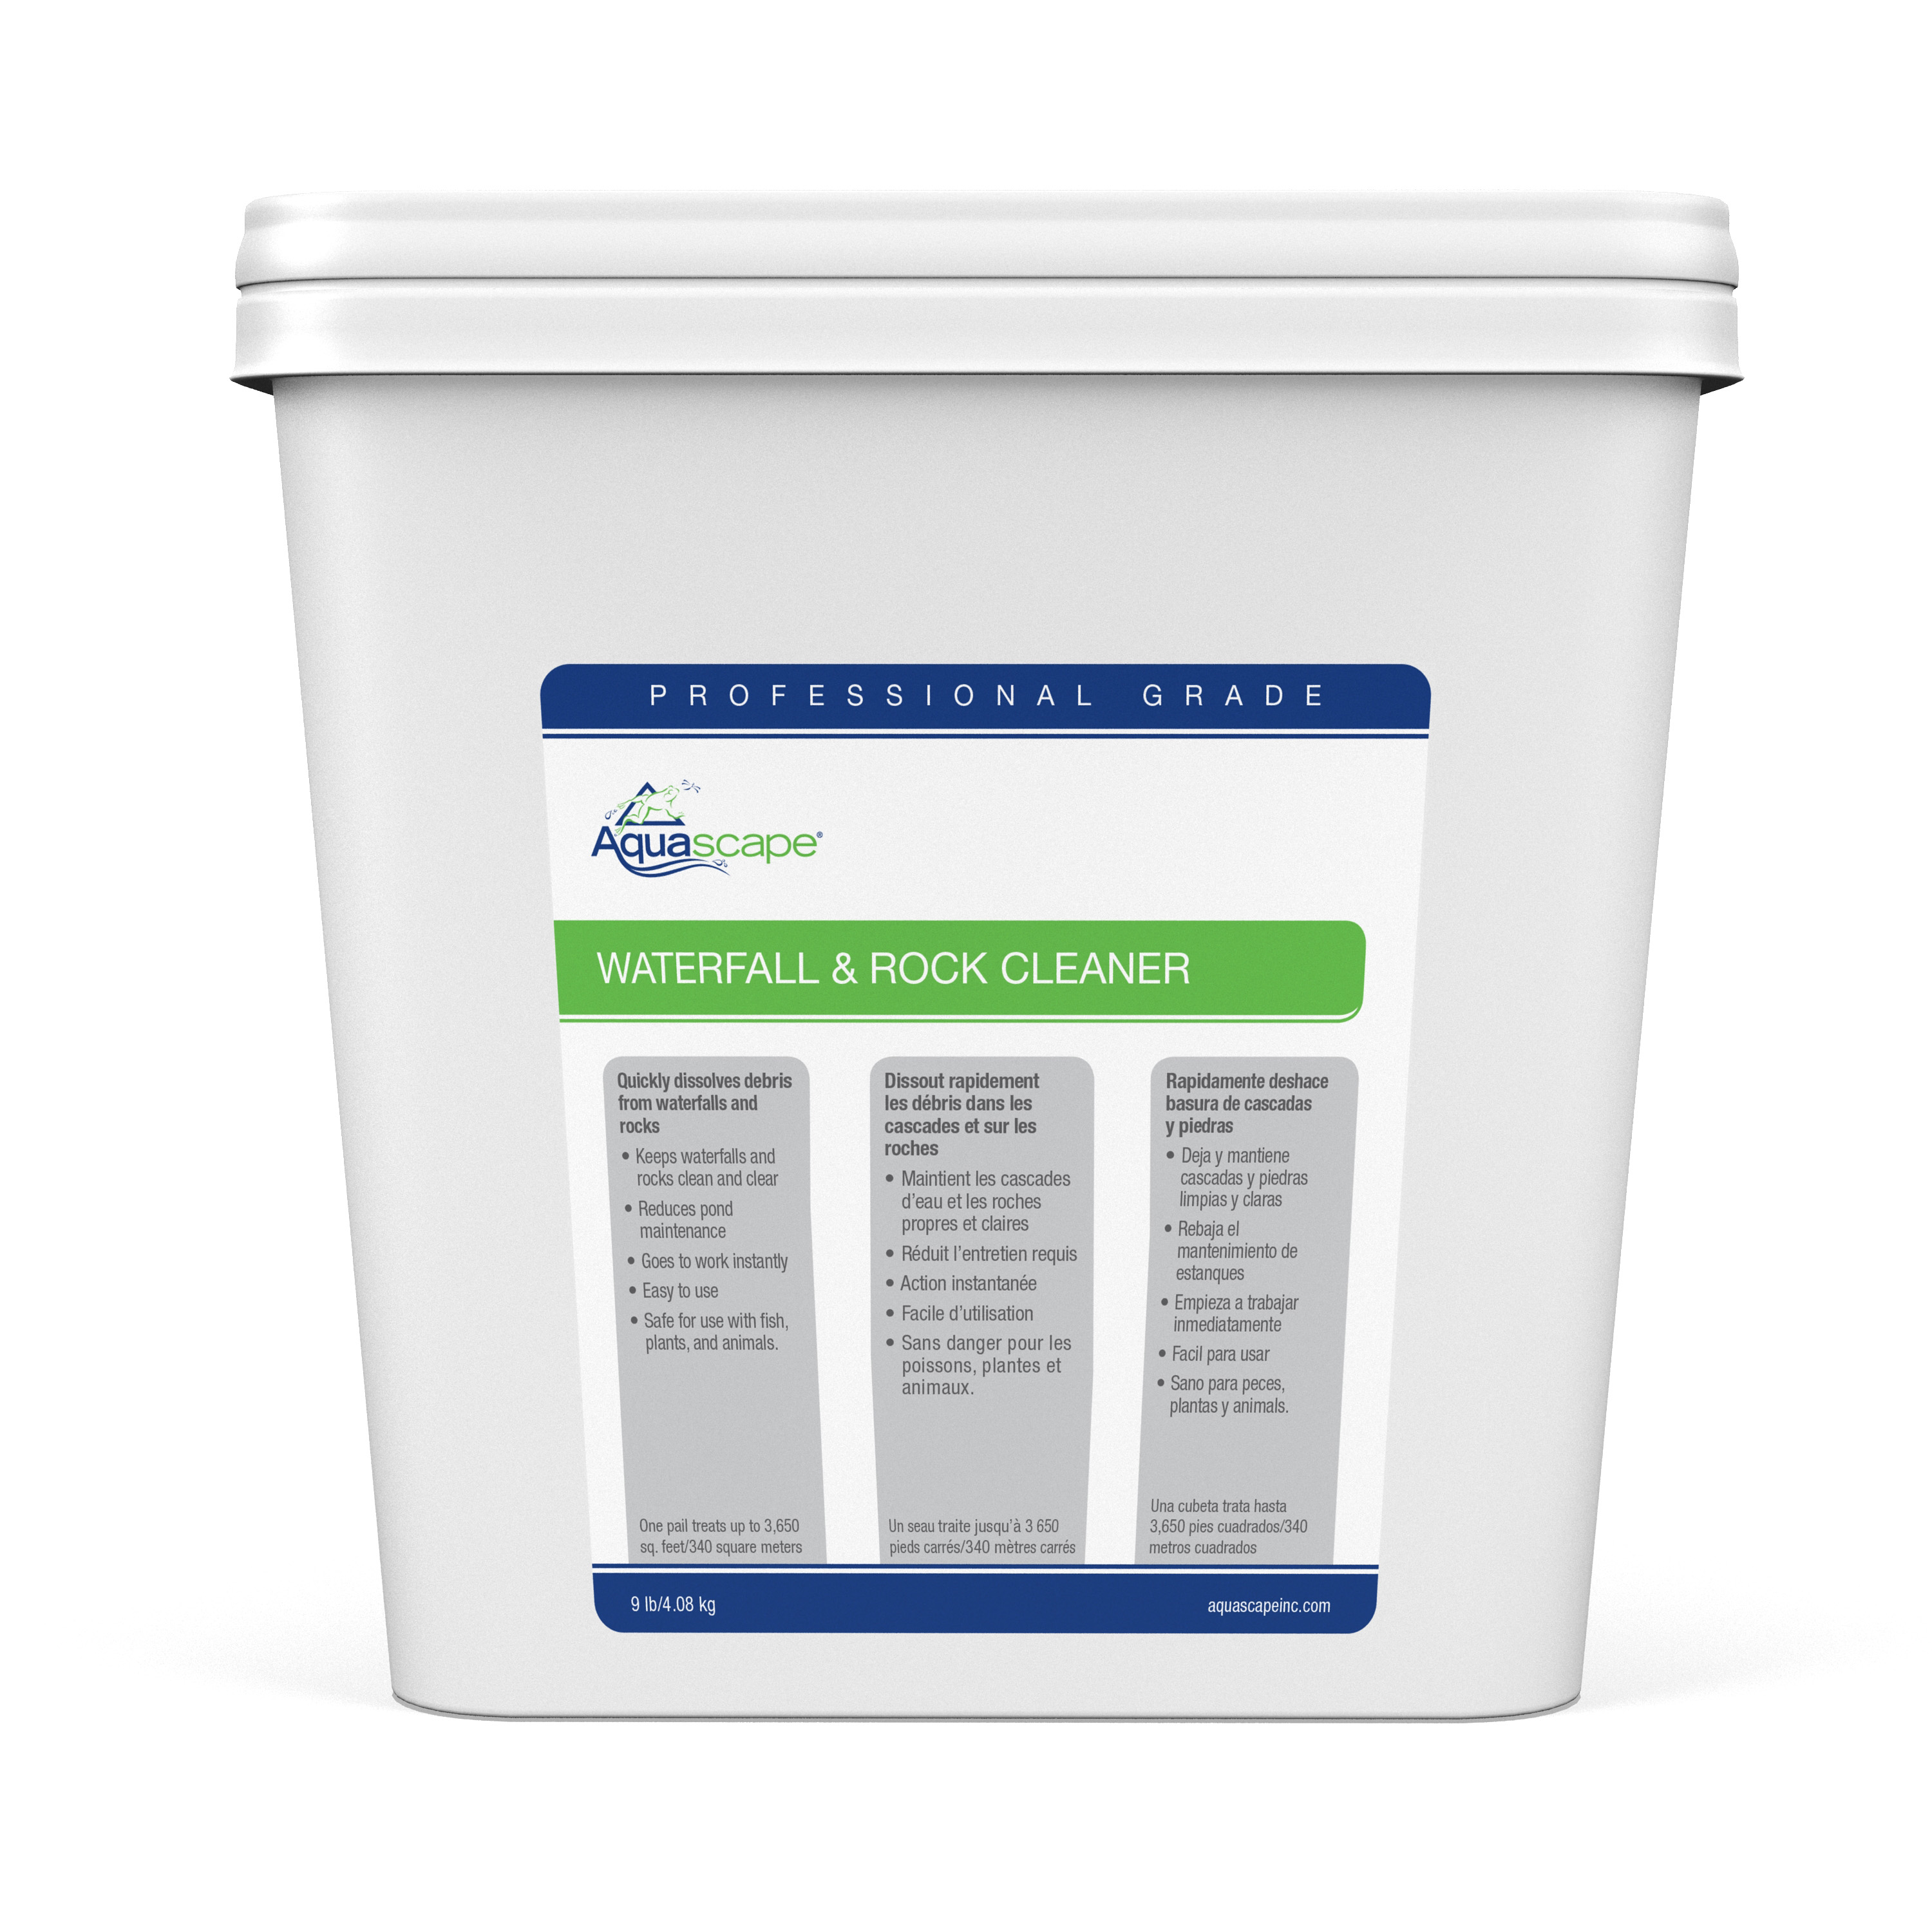 Waterfall & Rock Cleaner Professional Grade - 4.08kg / 9lb